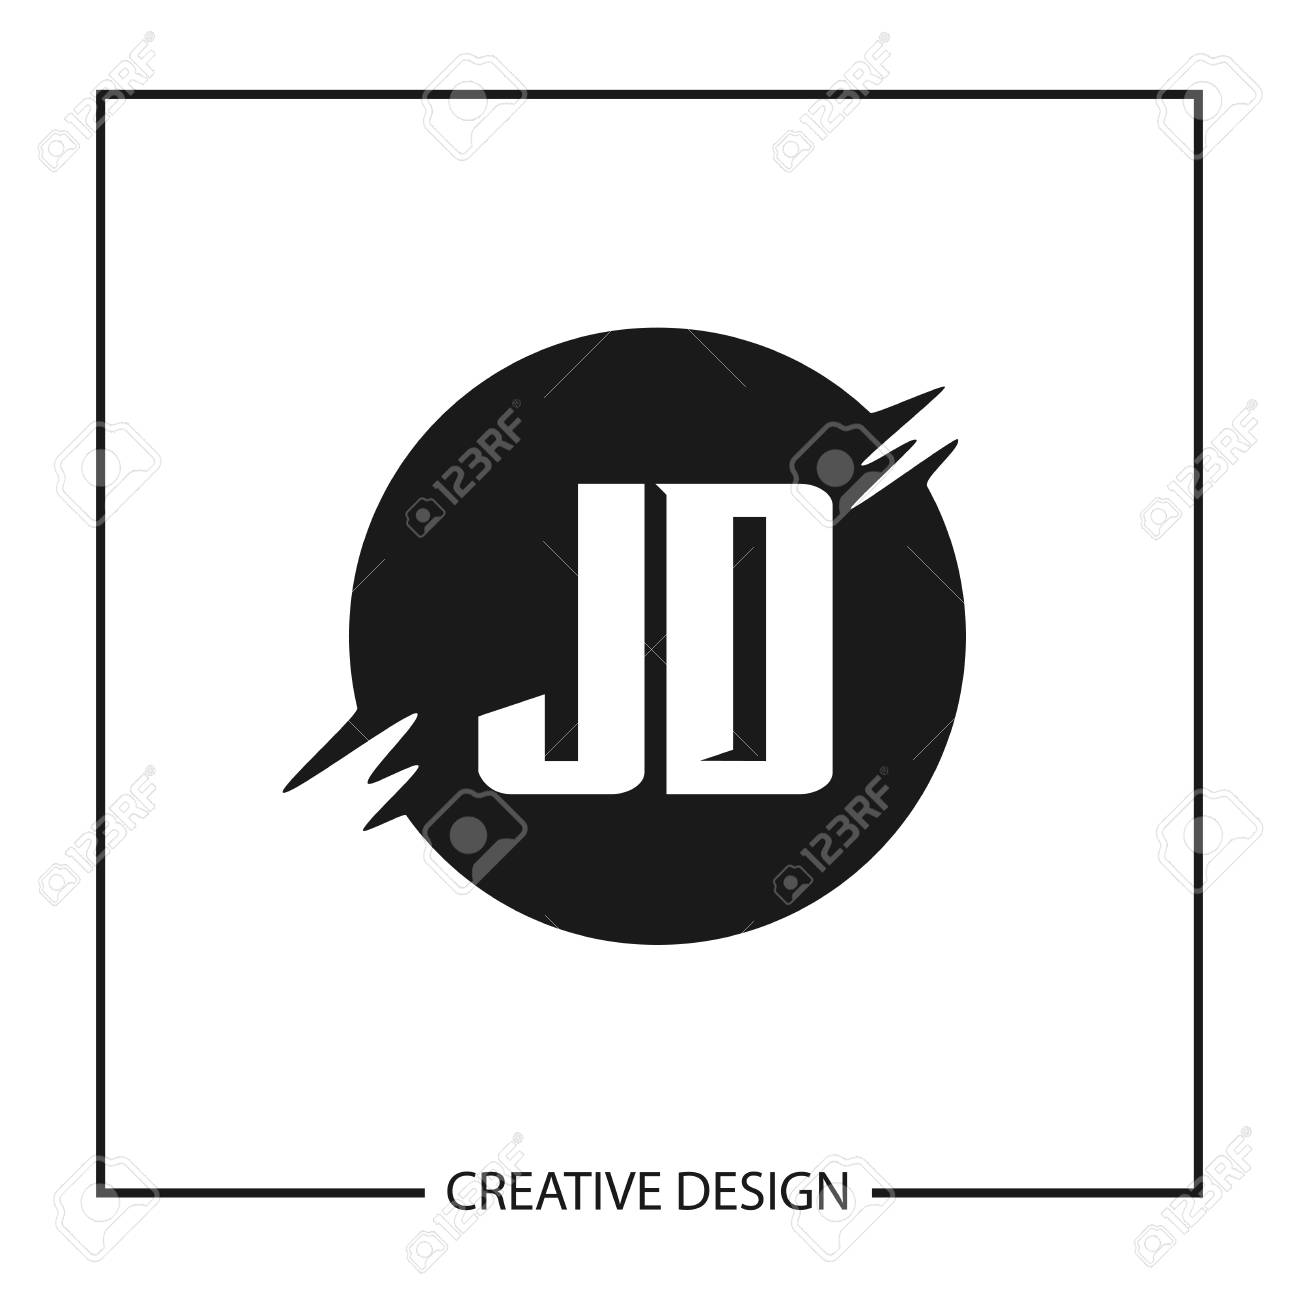 initial letter jd logo template design royalty free cliparts vectors and stock illustration image 112434238 initial letter jd logo template design